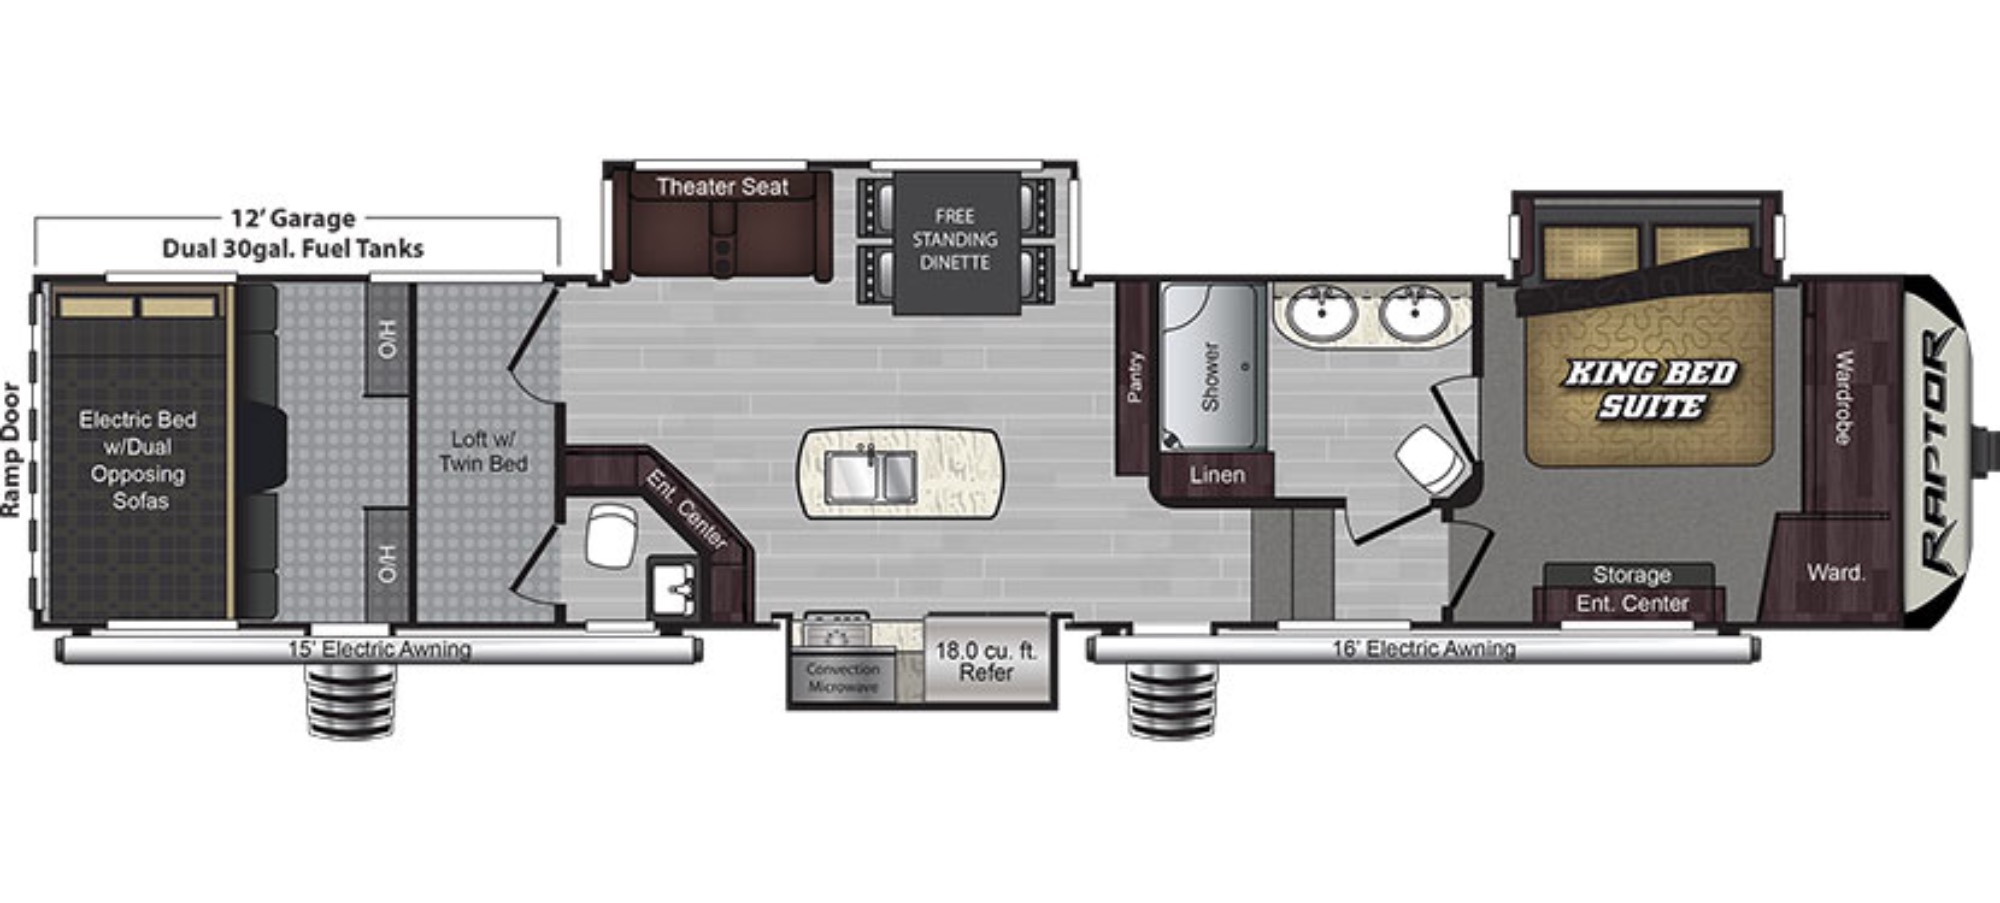 2016 Fuzion Toy Hauler Floor Plans Carpet Vidalondon